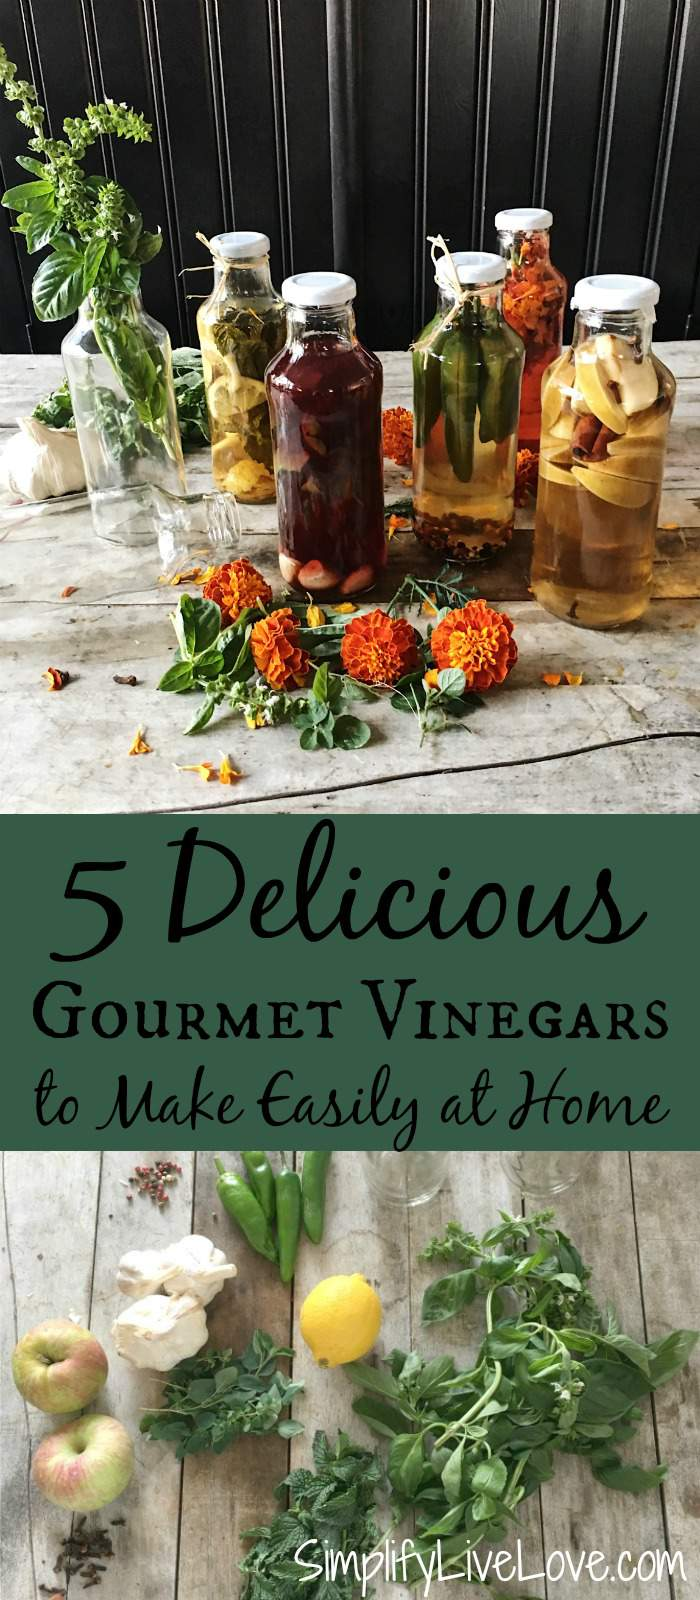 These 5 homemade gourmet vinegar flavors make the perfect edible gifts. They are beautiful and easy, perfect for marinades, salad dressings, & more!